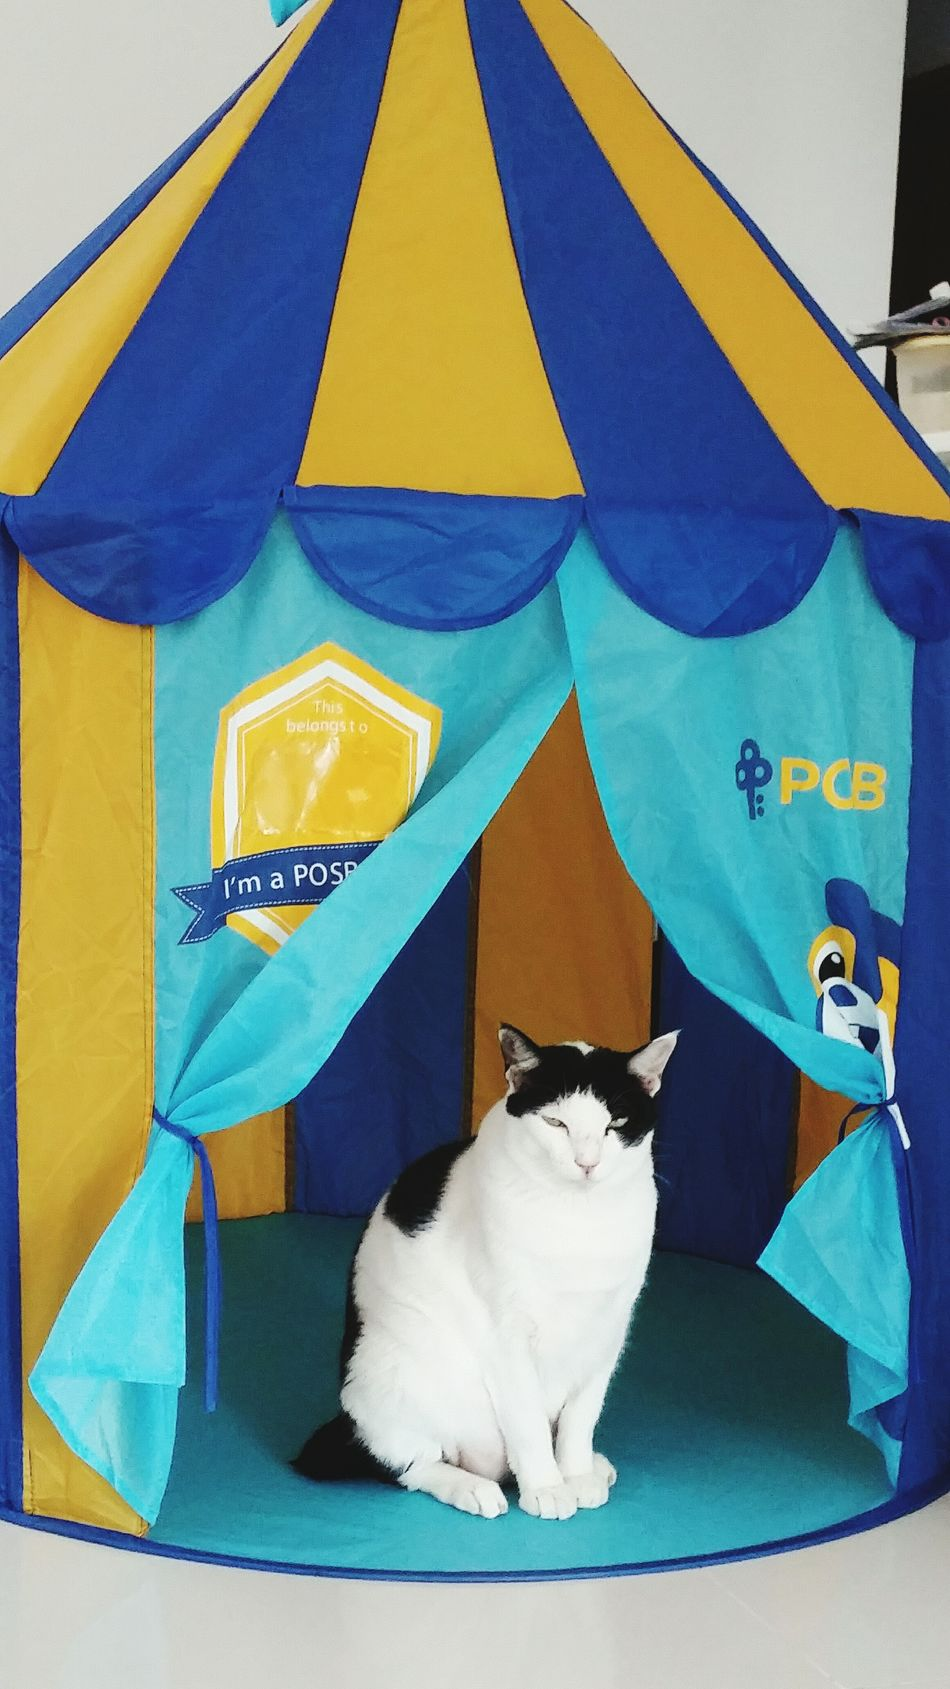 Pets Cat Black & White No People Feline Domestic Cat Indoors  One Animal Tent Sitting Down Small Eyes Pointy Ears Domestic Animals